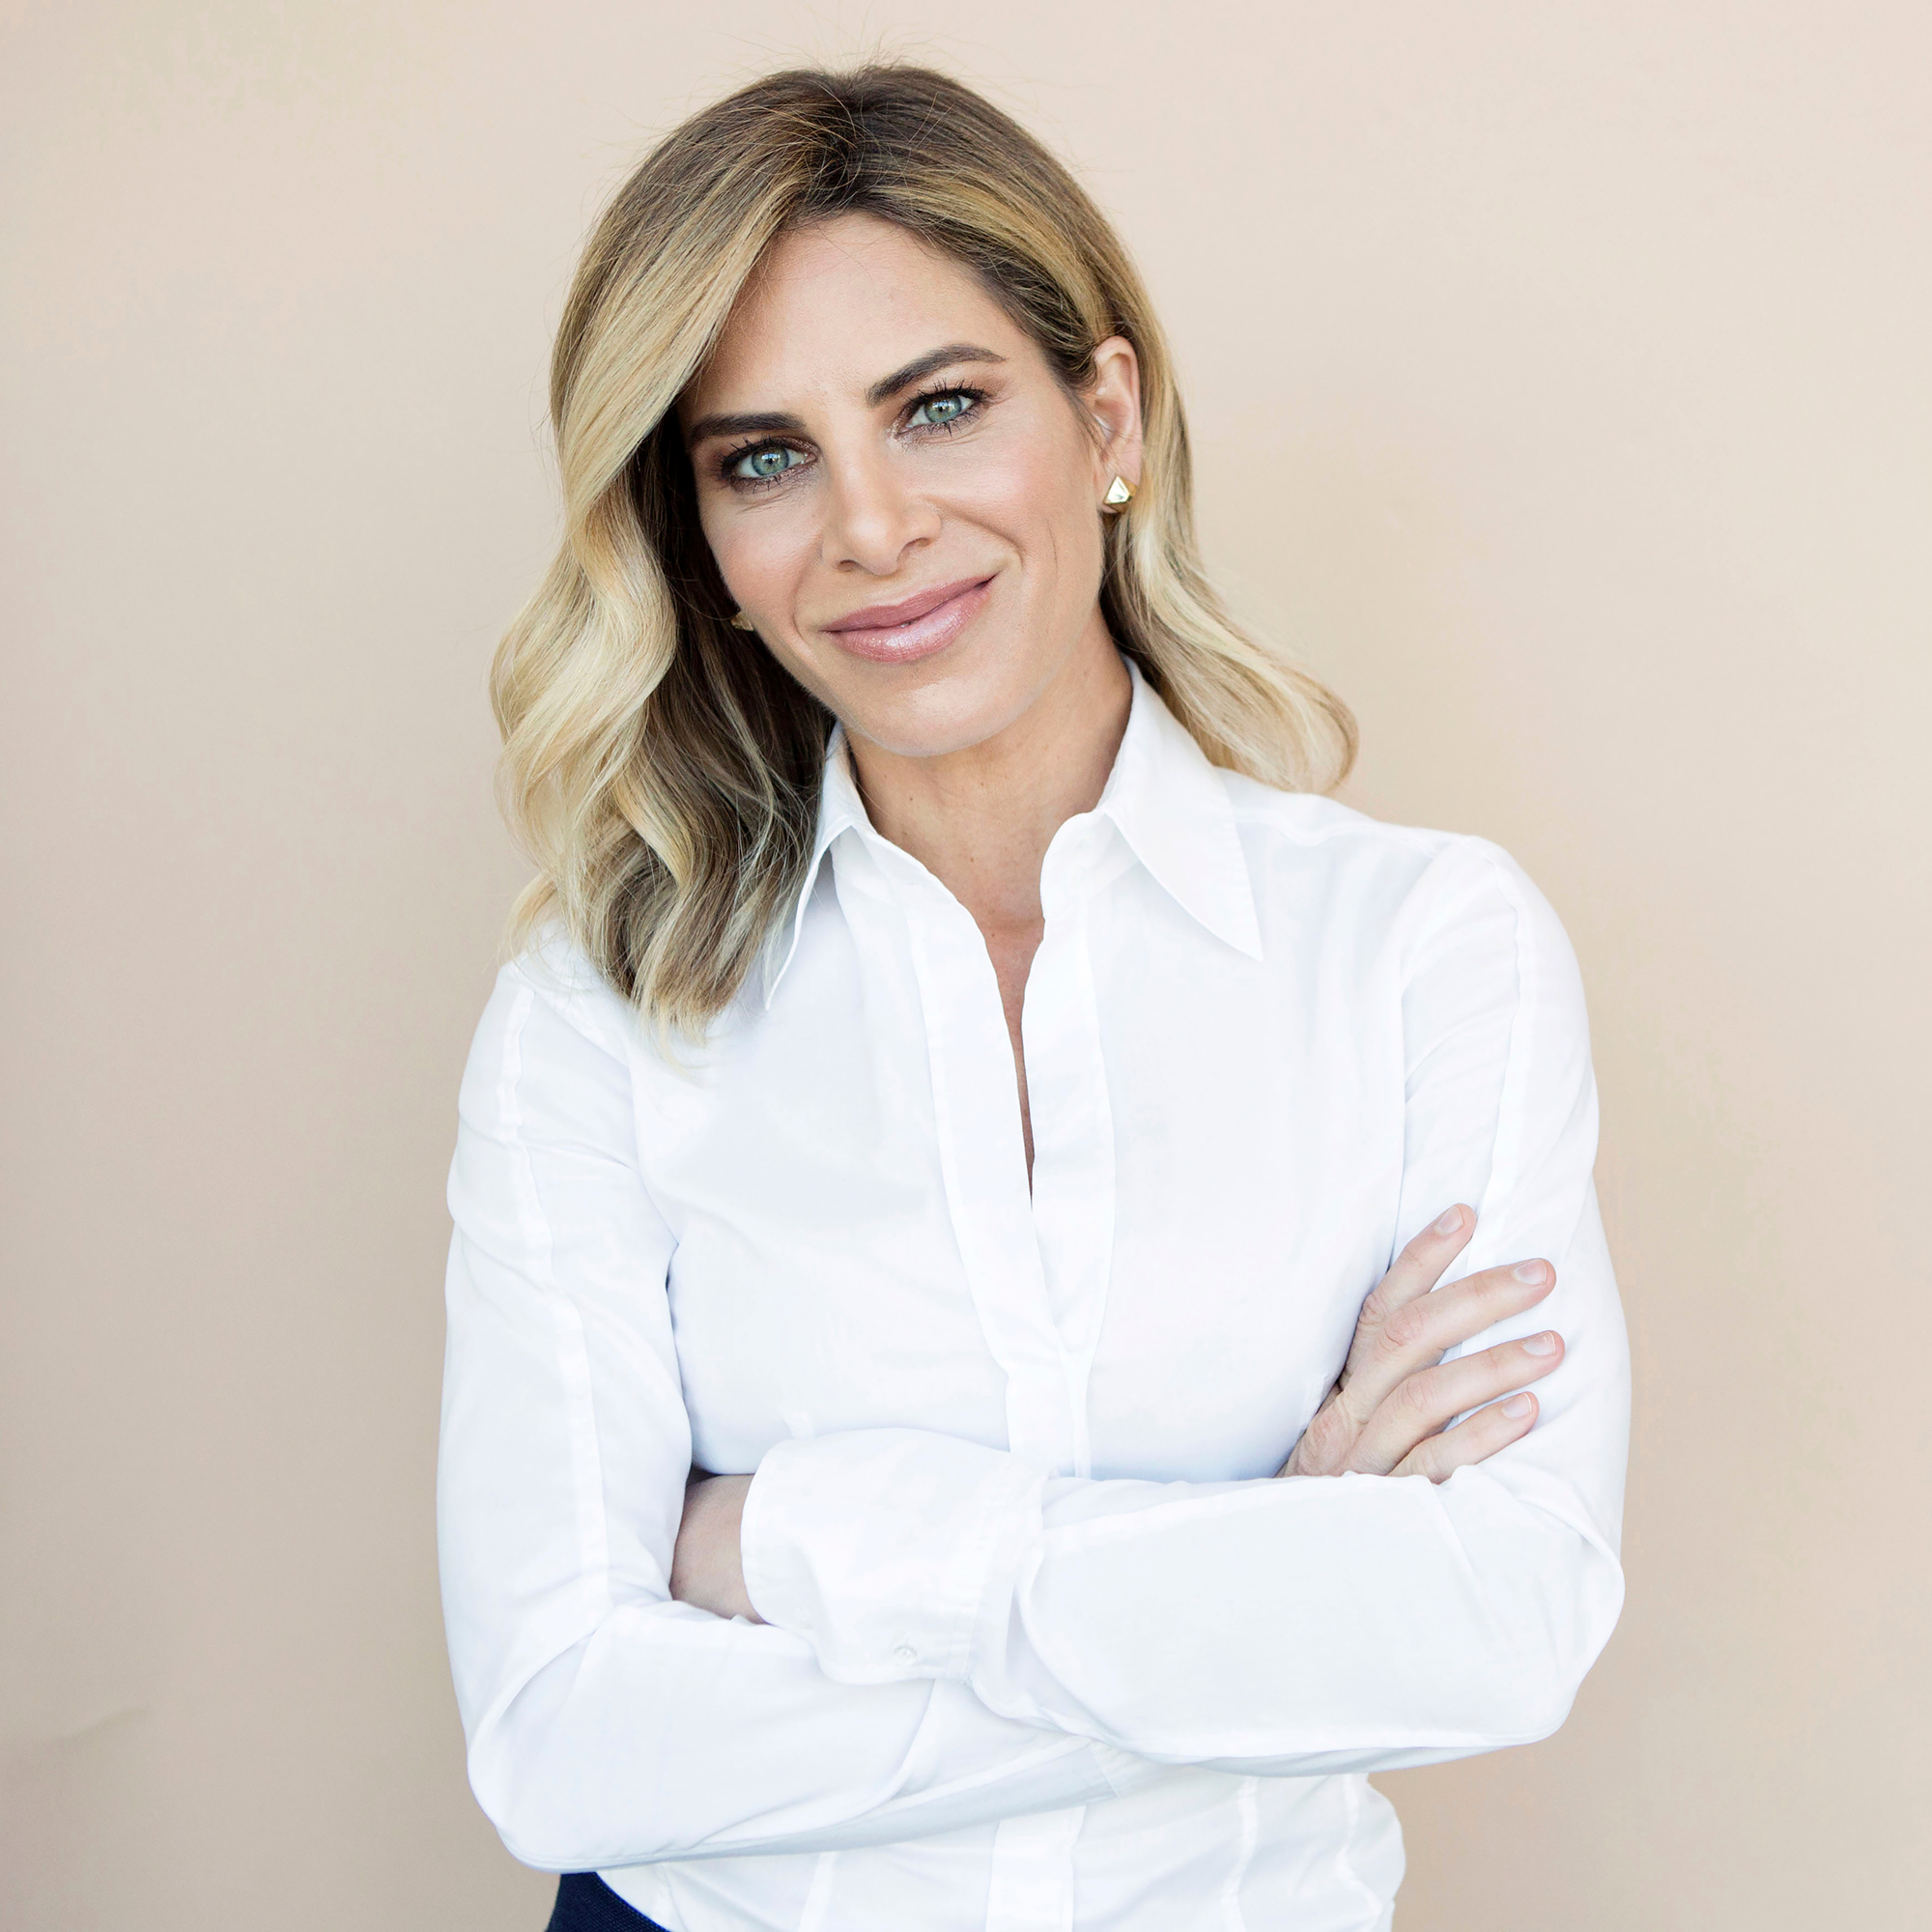 Jillian Michaels' Biggest Feuds Through the Years